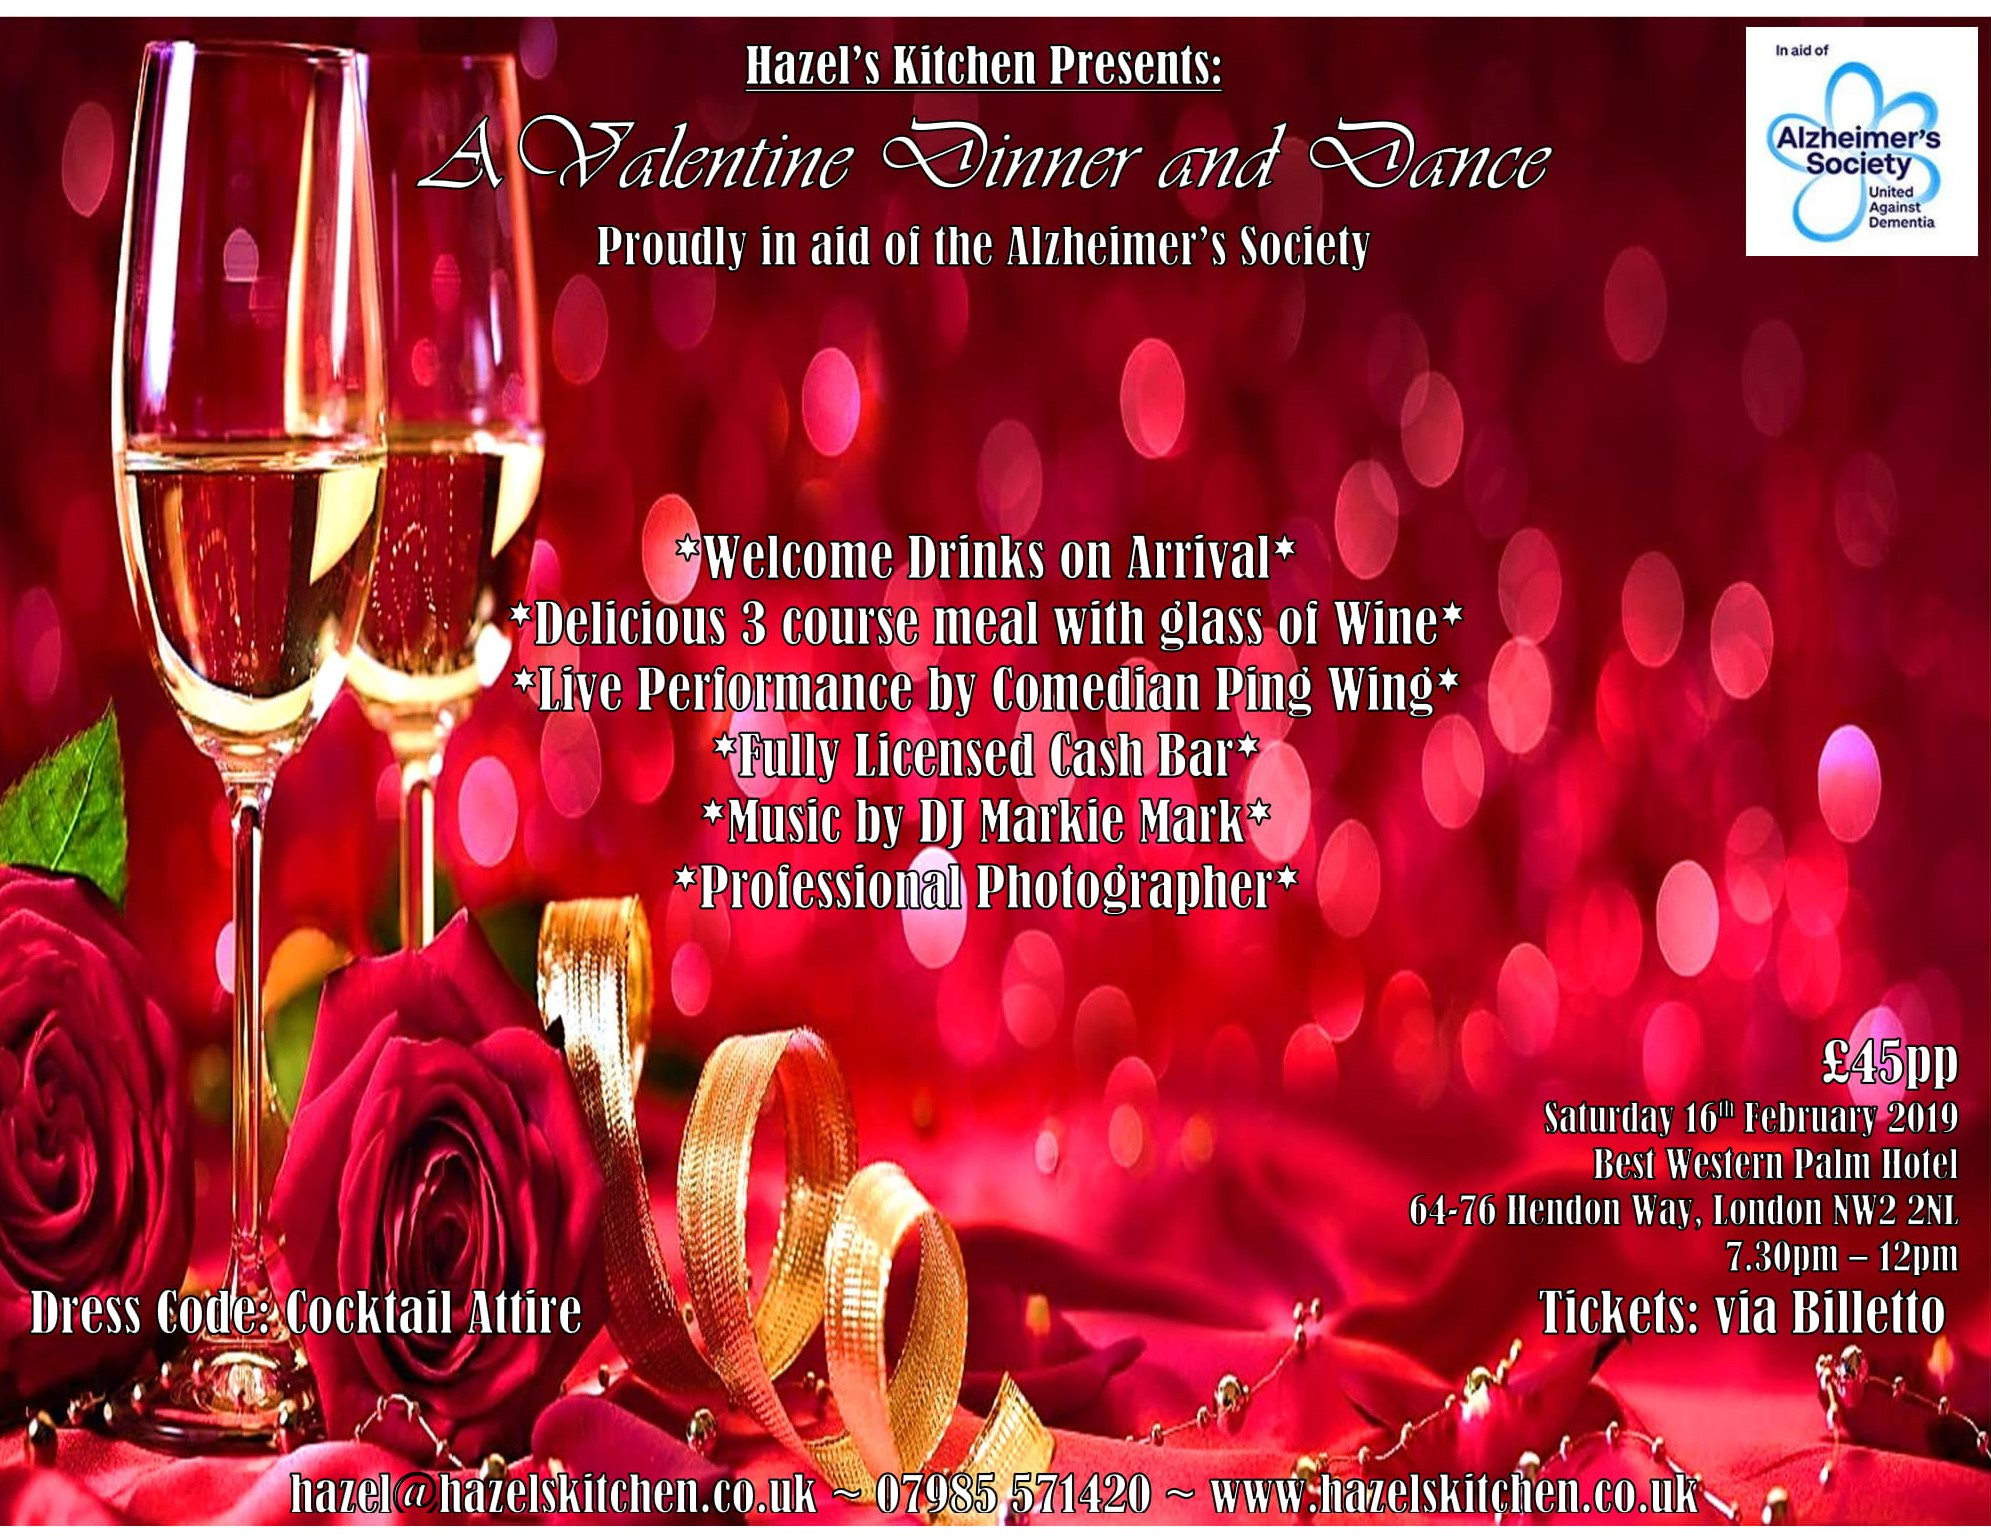 Valentine Dinner and Dance